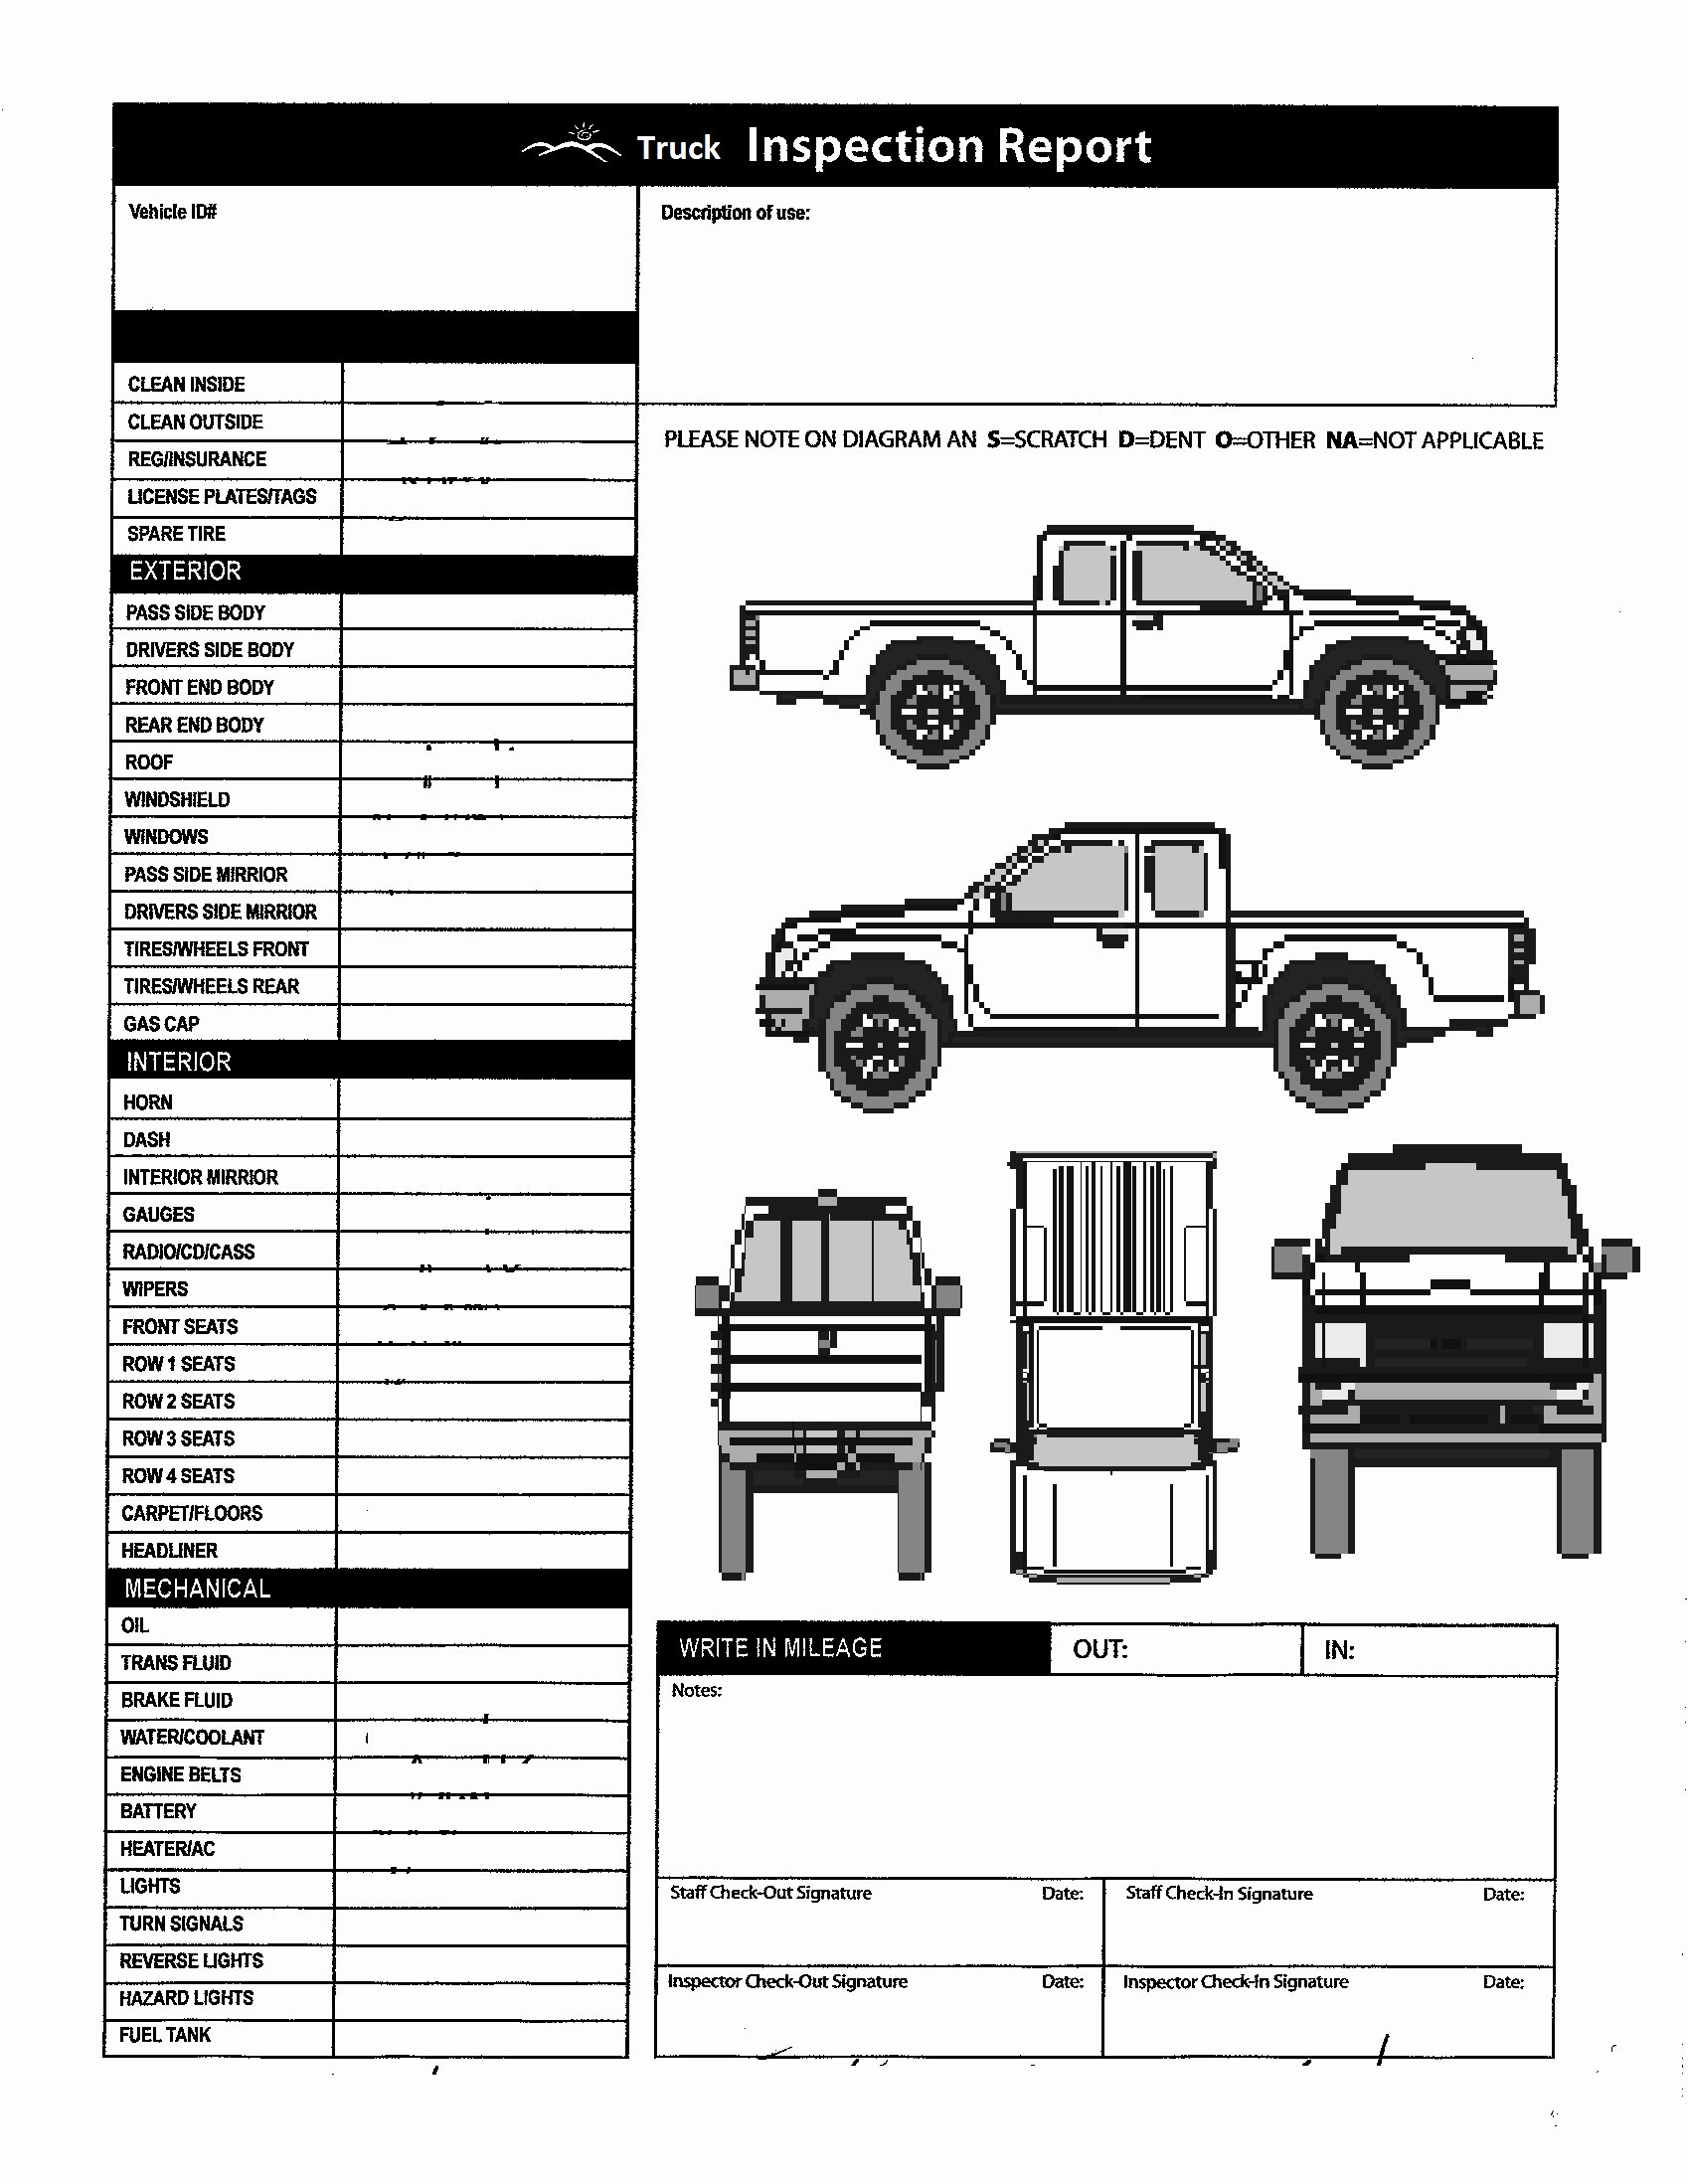 Vehicle Check Sheet Template Inspirational Vehicle Inspection form Template